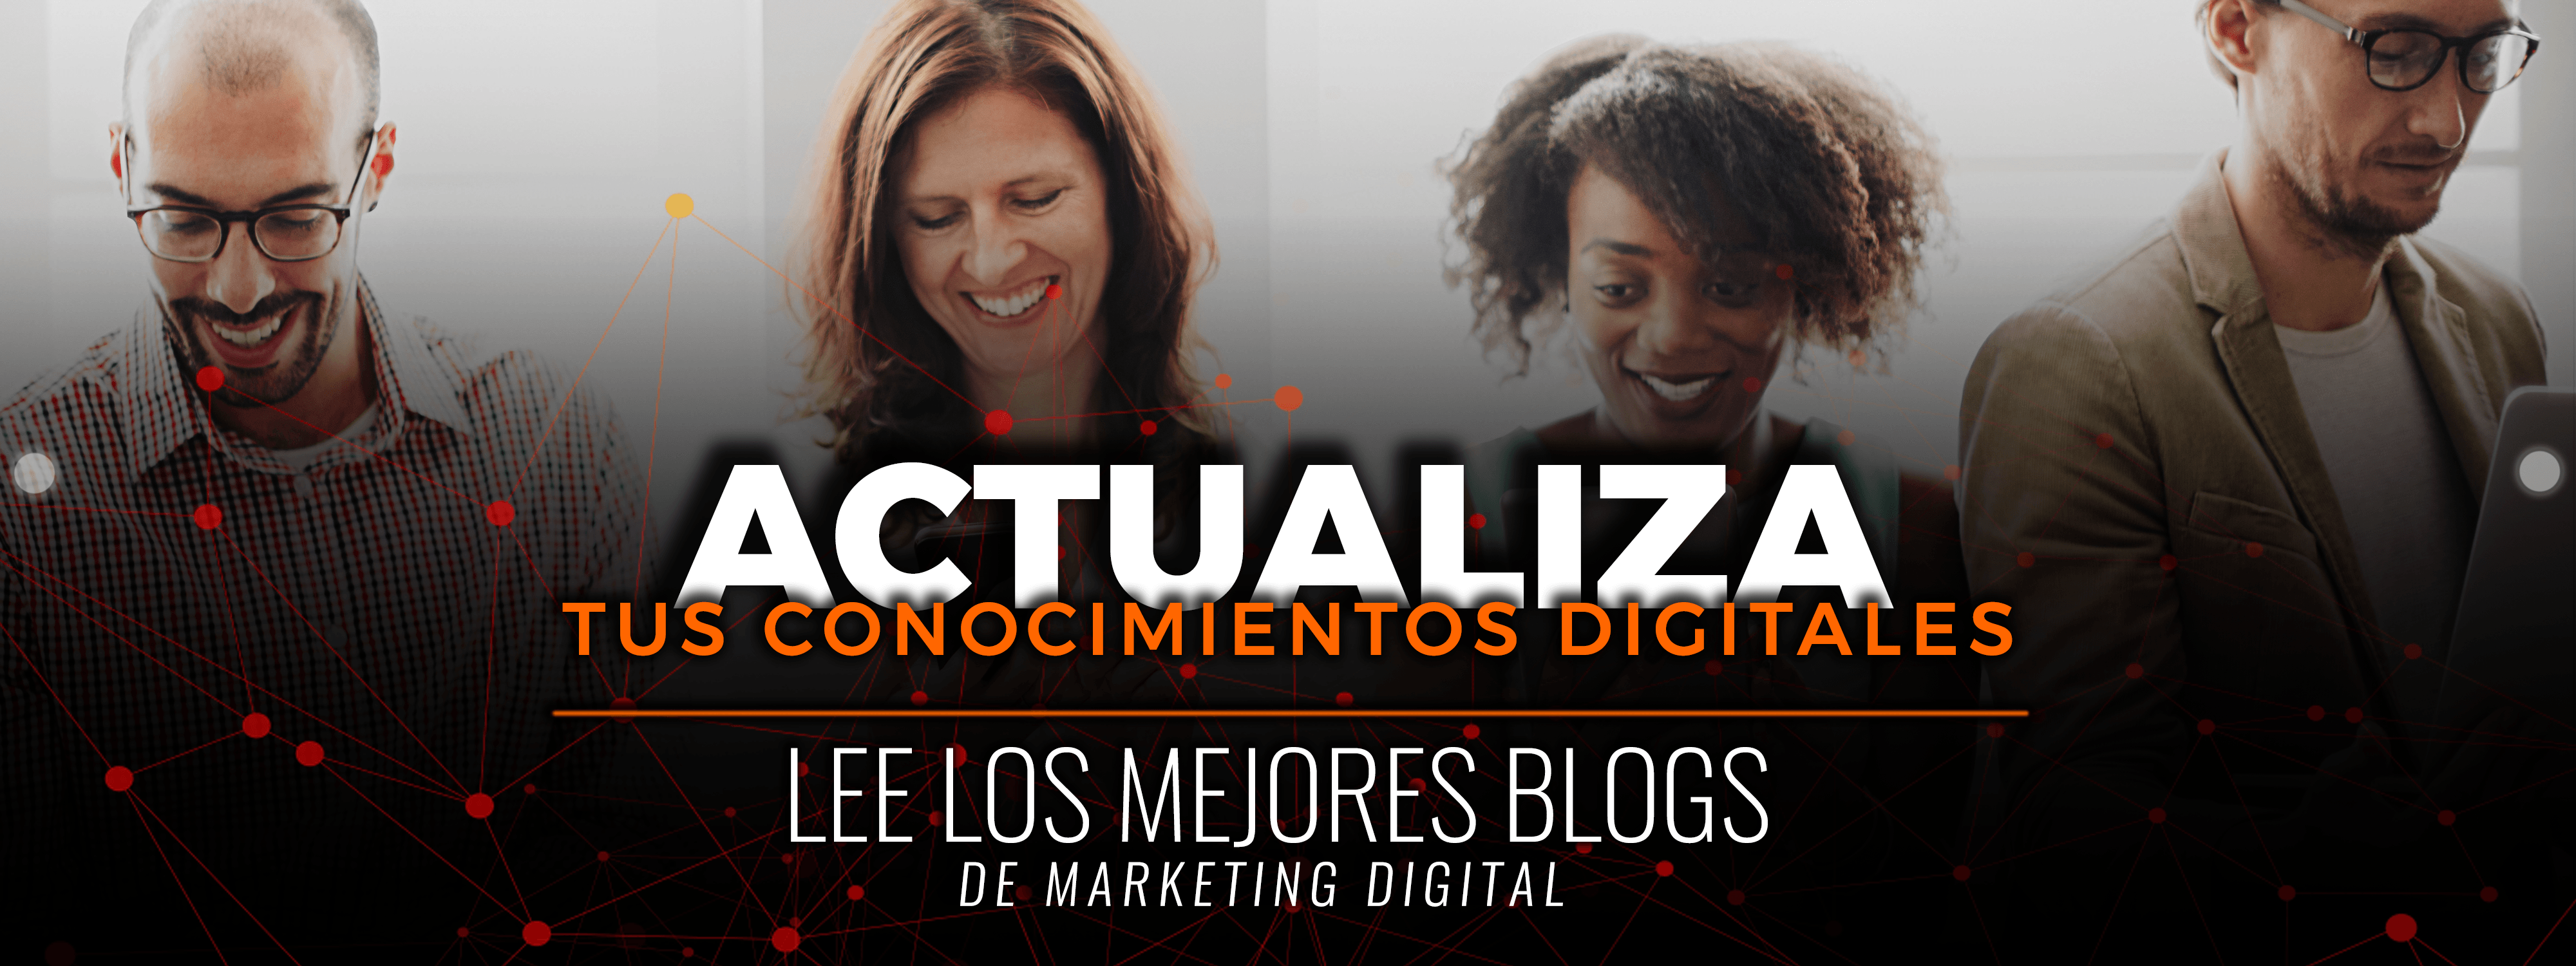 Blogs_de_marketing_digital